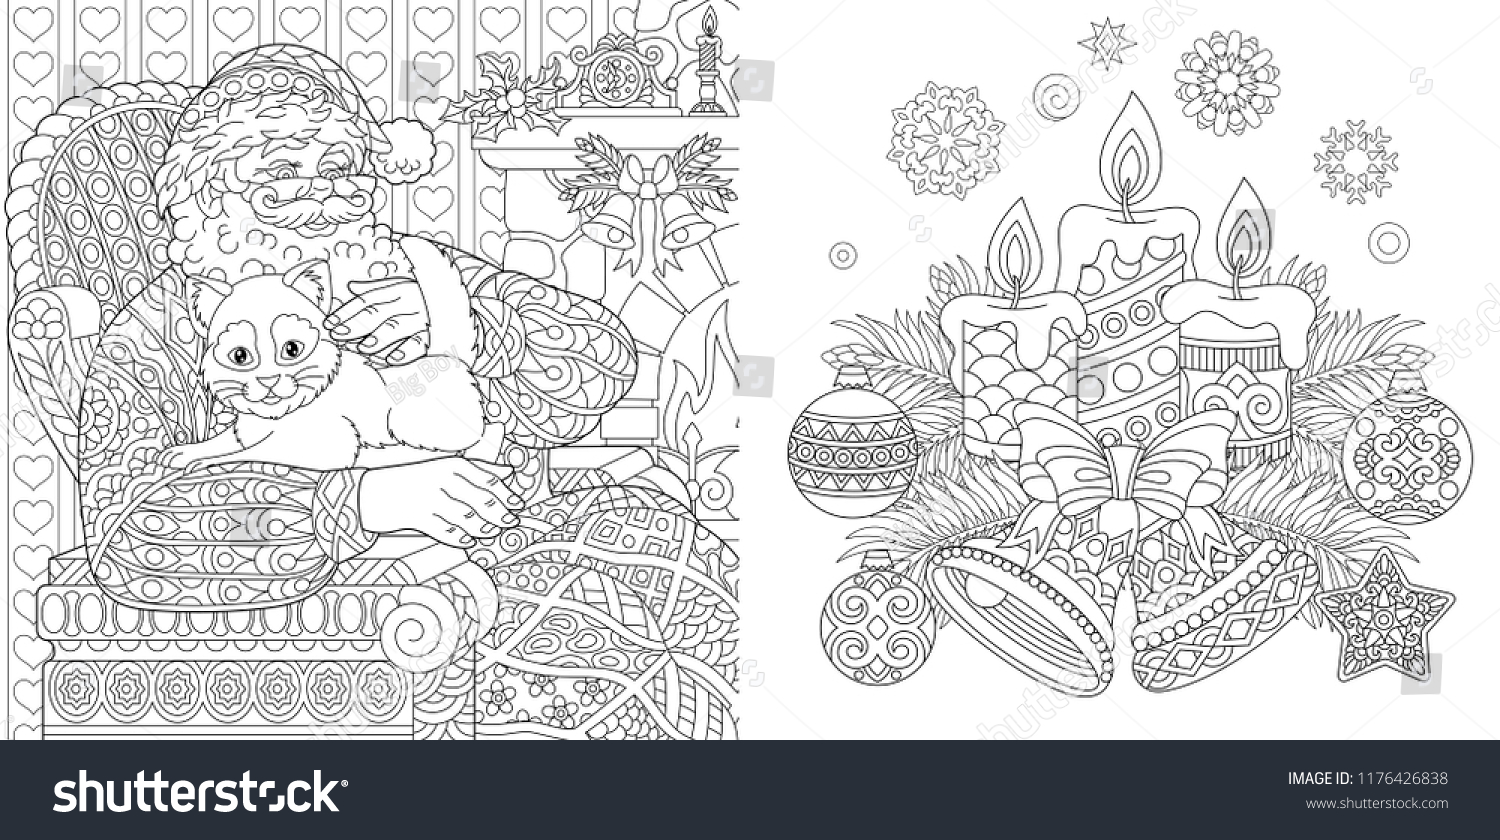 Coloring Pages For Christmas Adults With Colouring Book Stock Vector Royalty